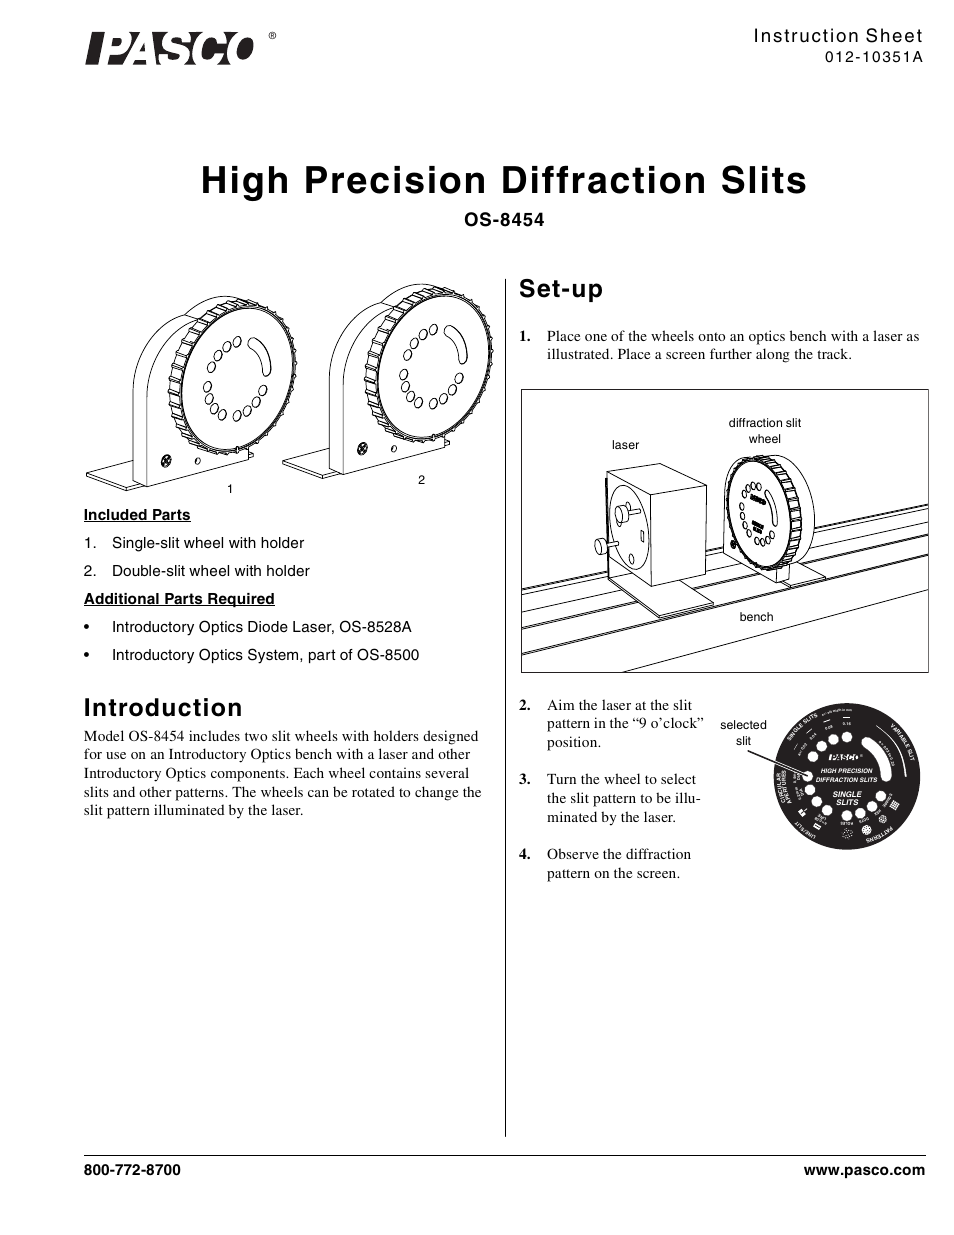 PASCO OS-8454 High Precision Diffraction Slits User Manual